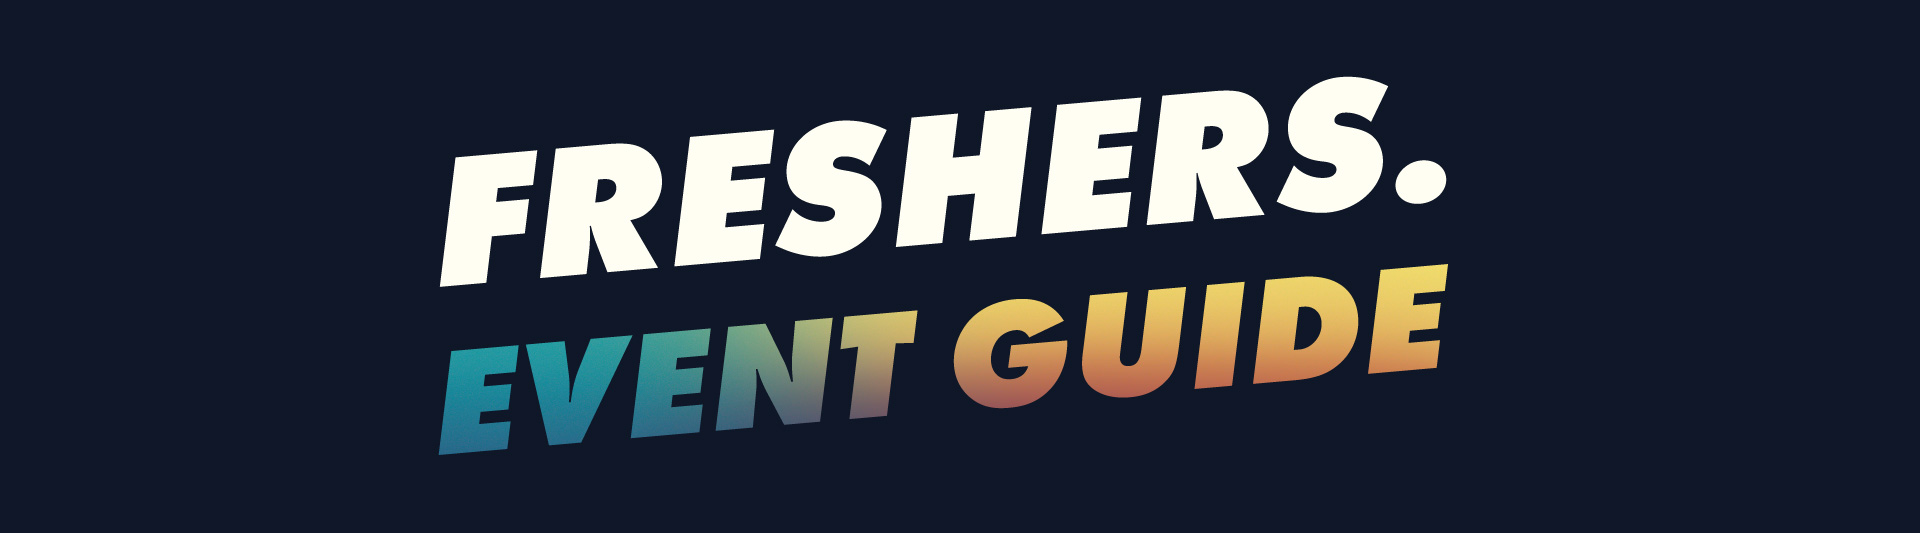 Freshers Events Guide